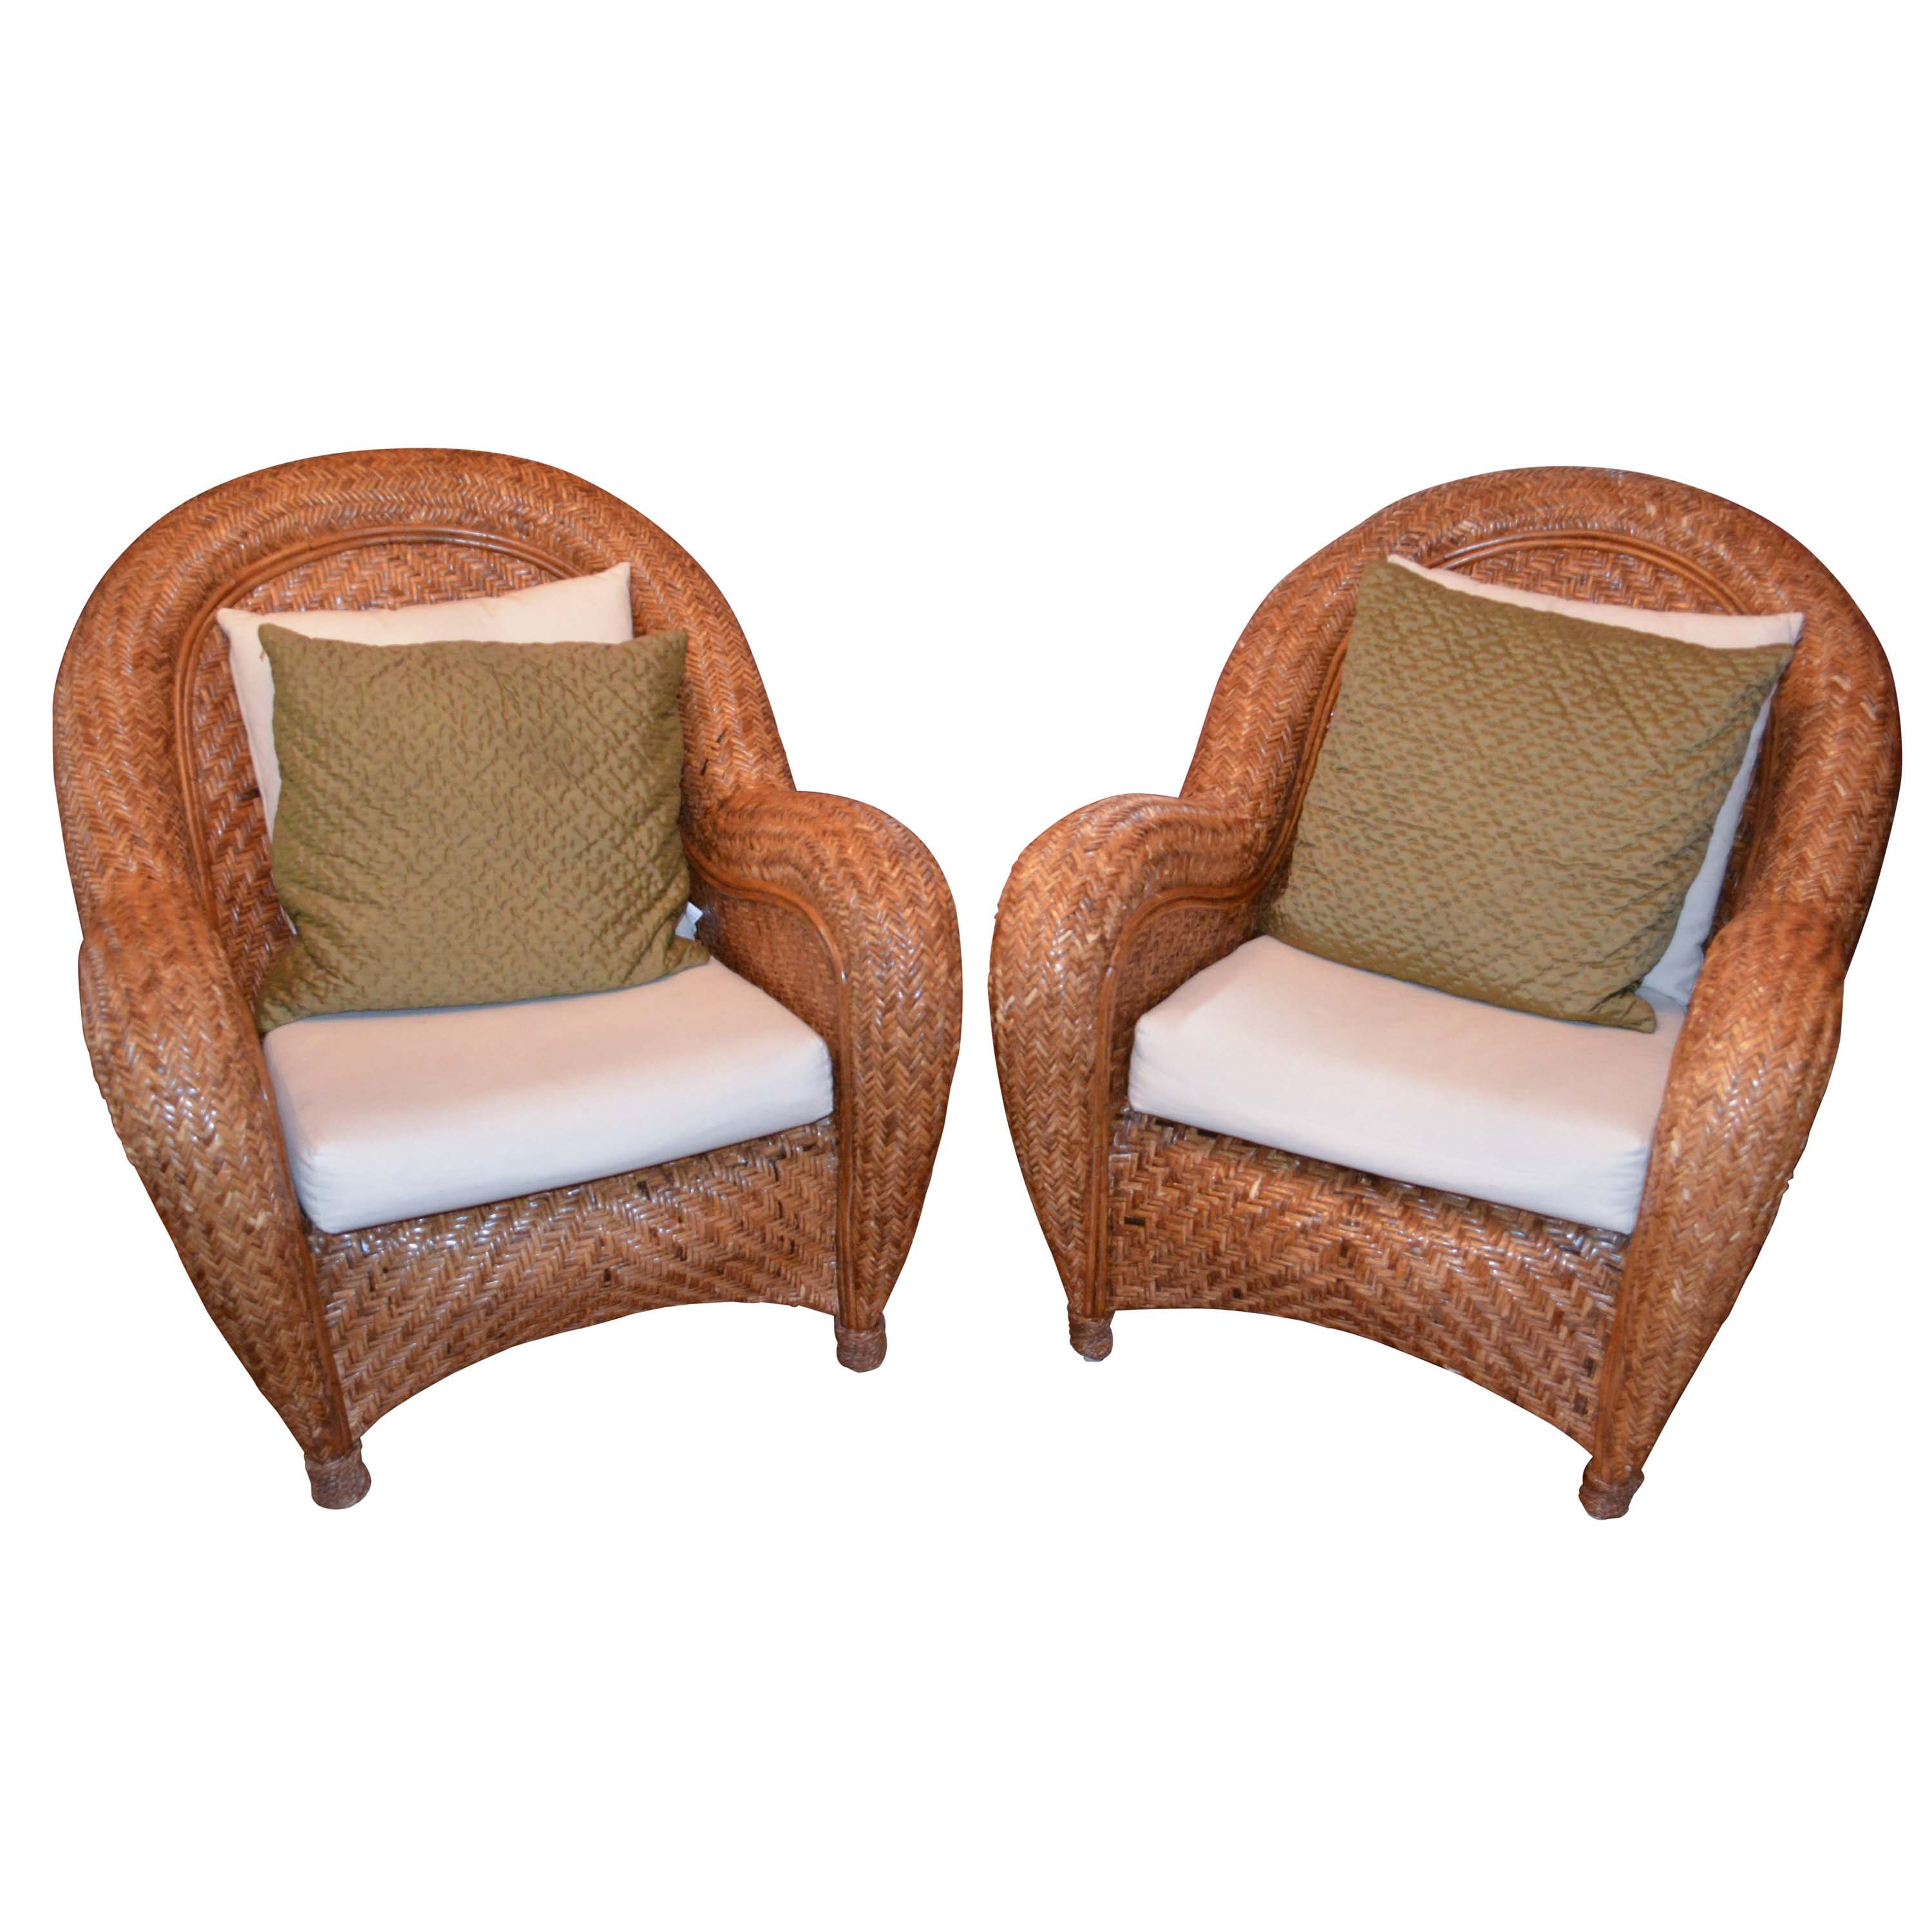 High Quality Pair Of Rattan Chairs With Four Pottery Barn Pillows ...